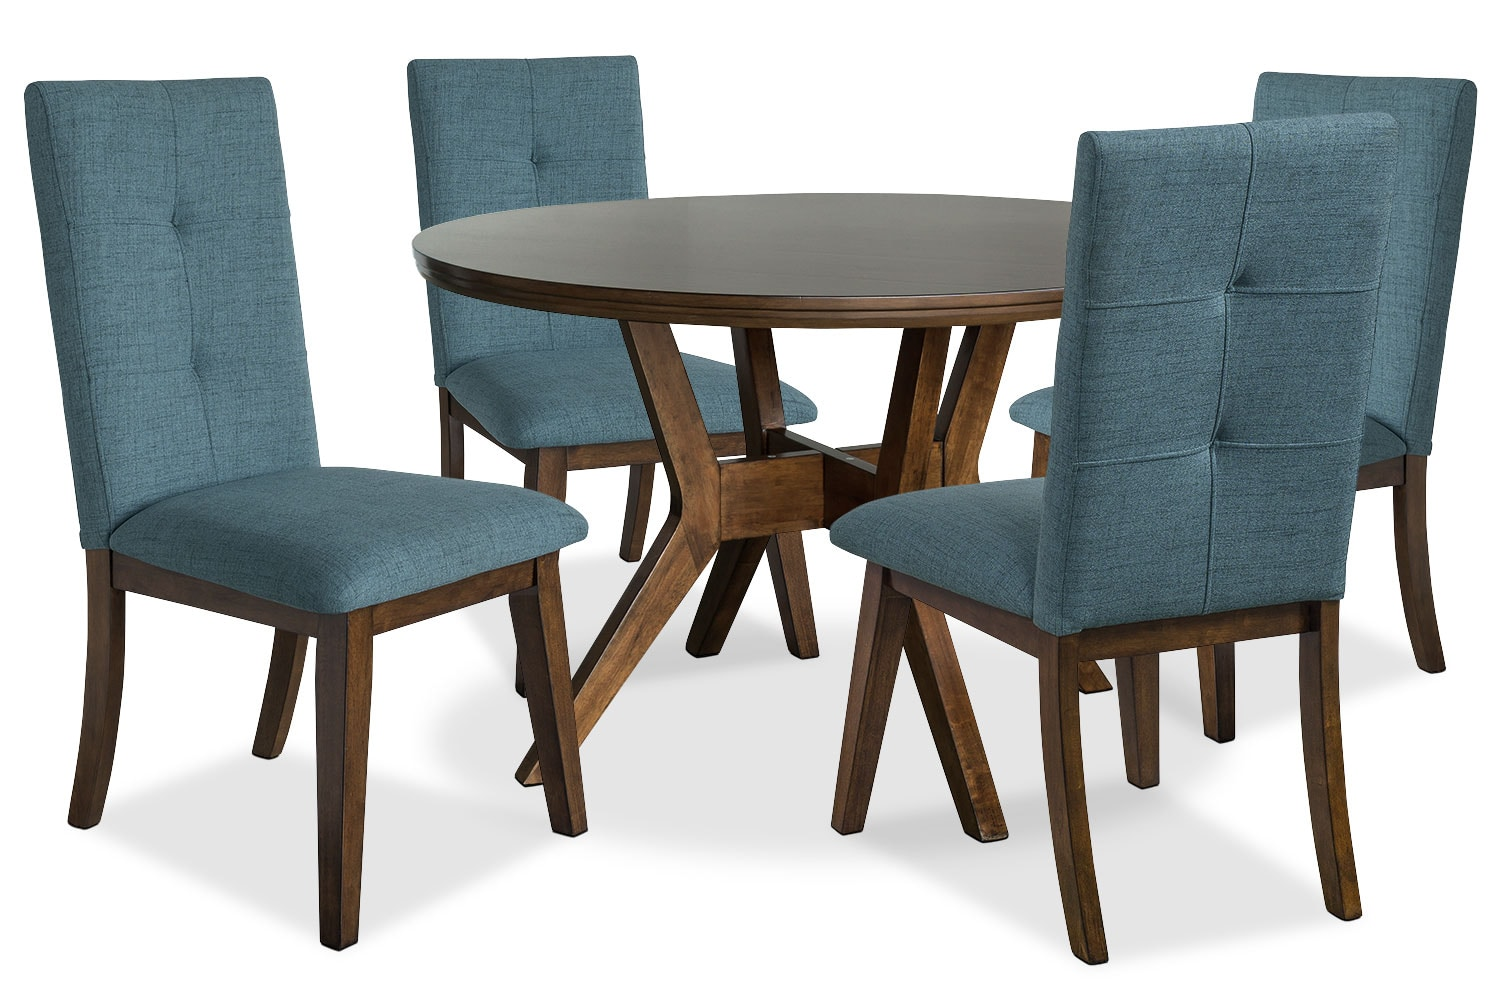 Aqua Dining Chairs Chelsea 5 Piece Round Dining Table Package With Aqua